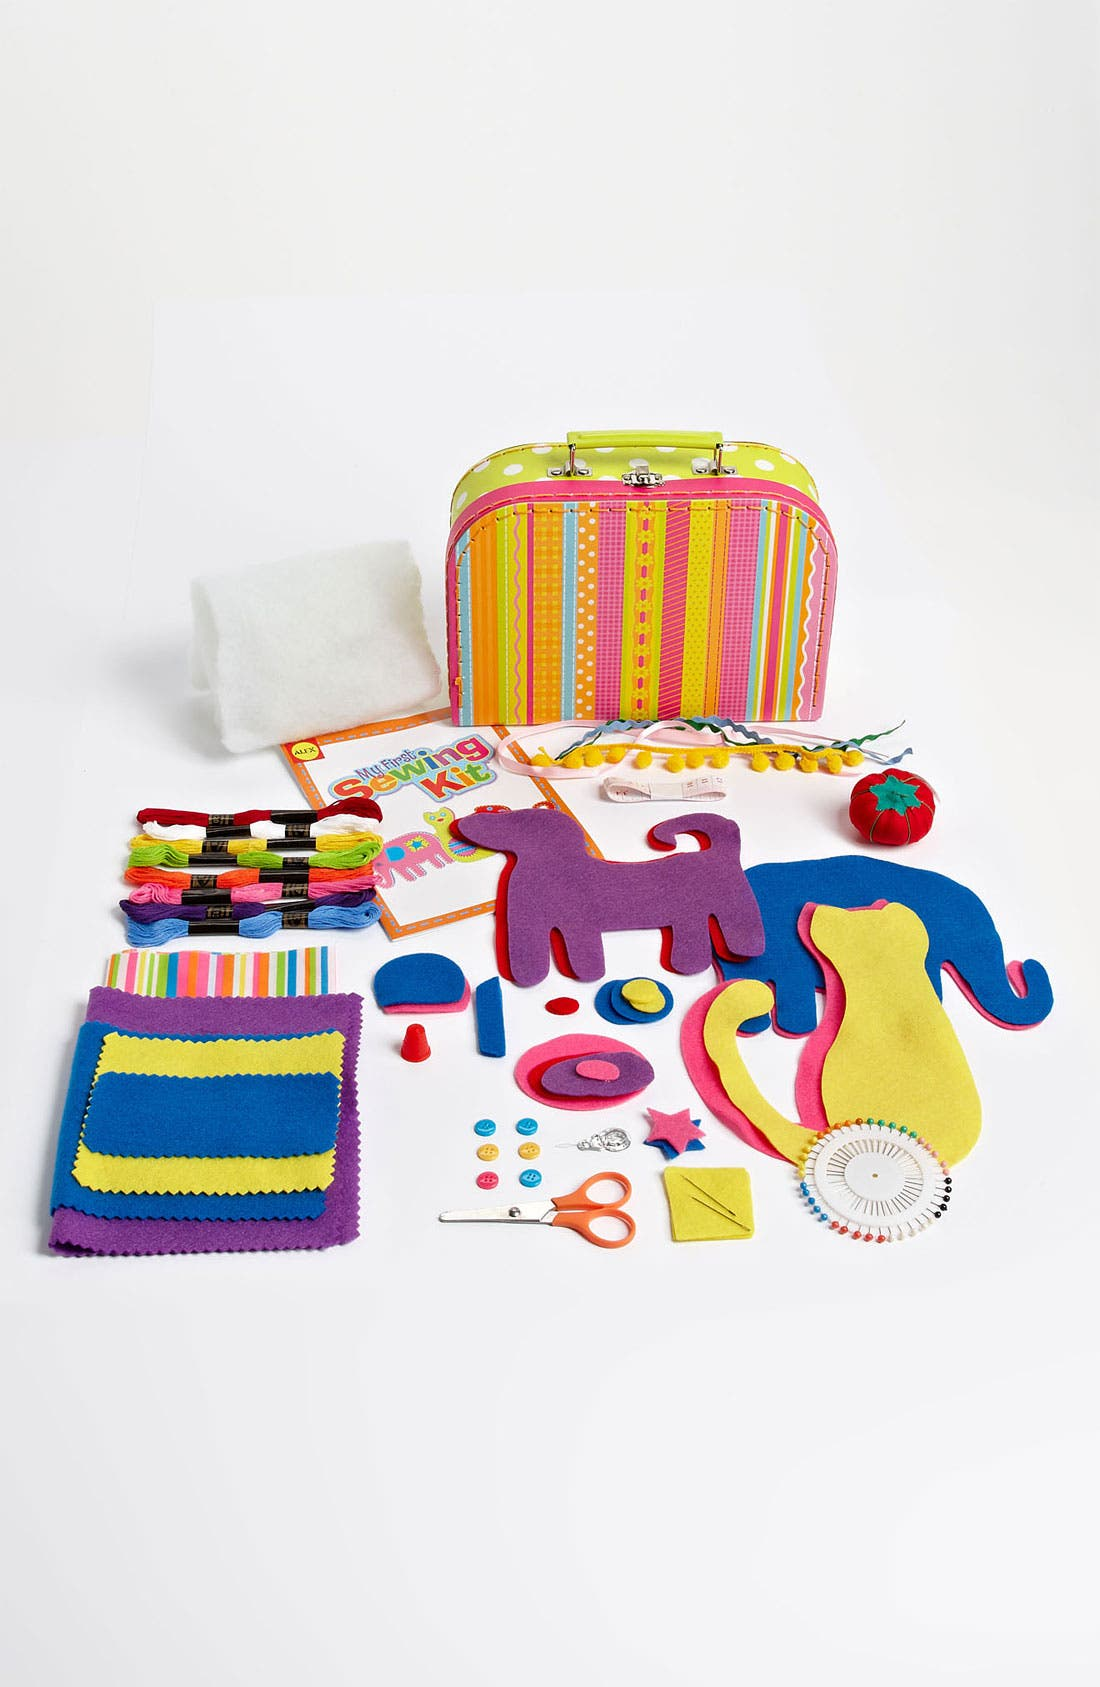 Alternate Image 1 Selected - Alex® Toys 'My First Sewing Kit' Craft Kit